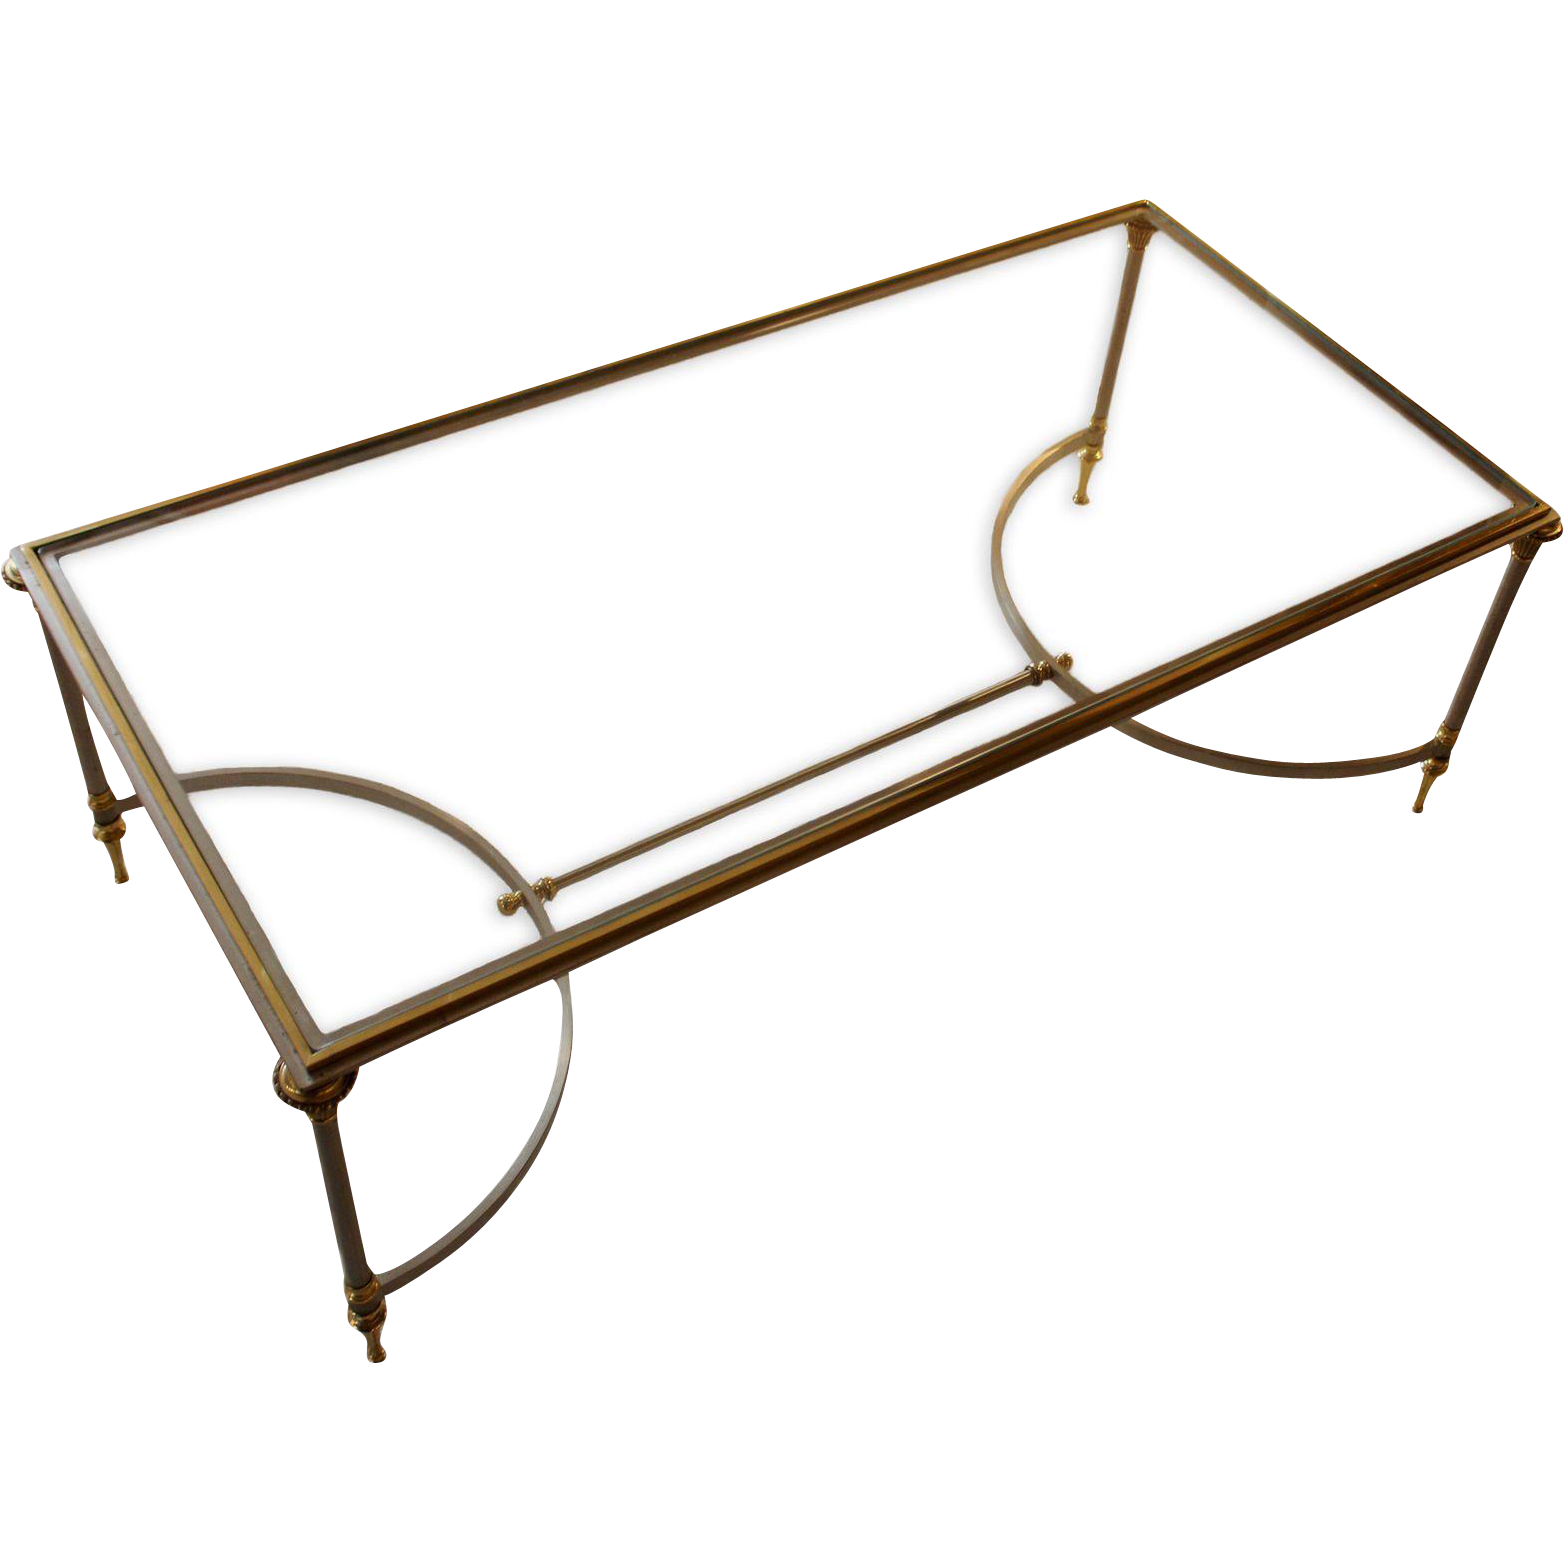 Glass Lime Green Together With Maison Jansen Art Modern Coffee Table